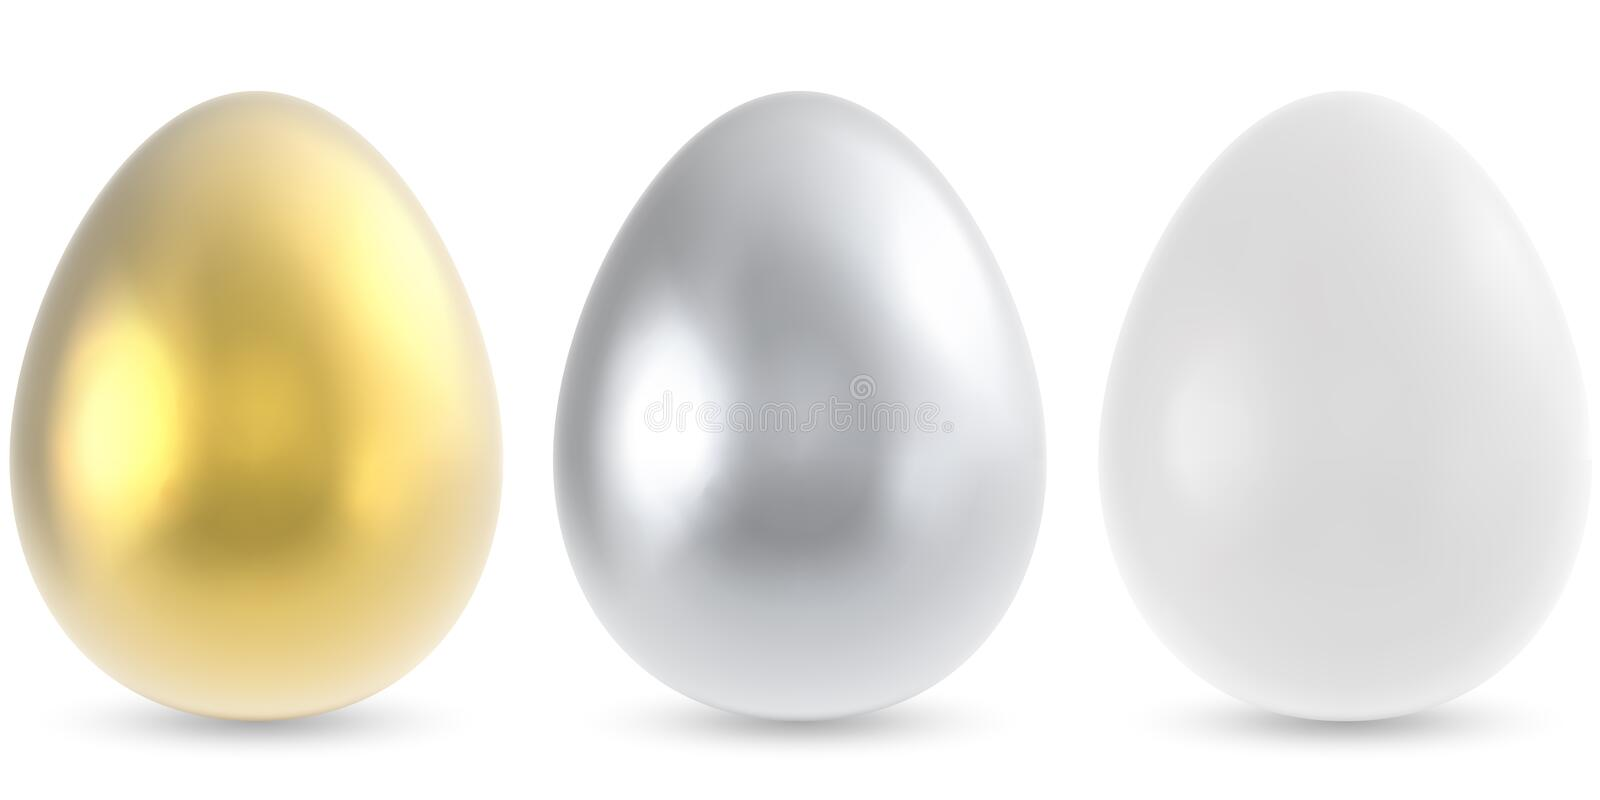 Gold, silver and white egg. Isolated on white background. Vector illustration vector illustration